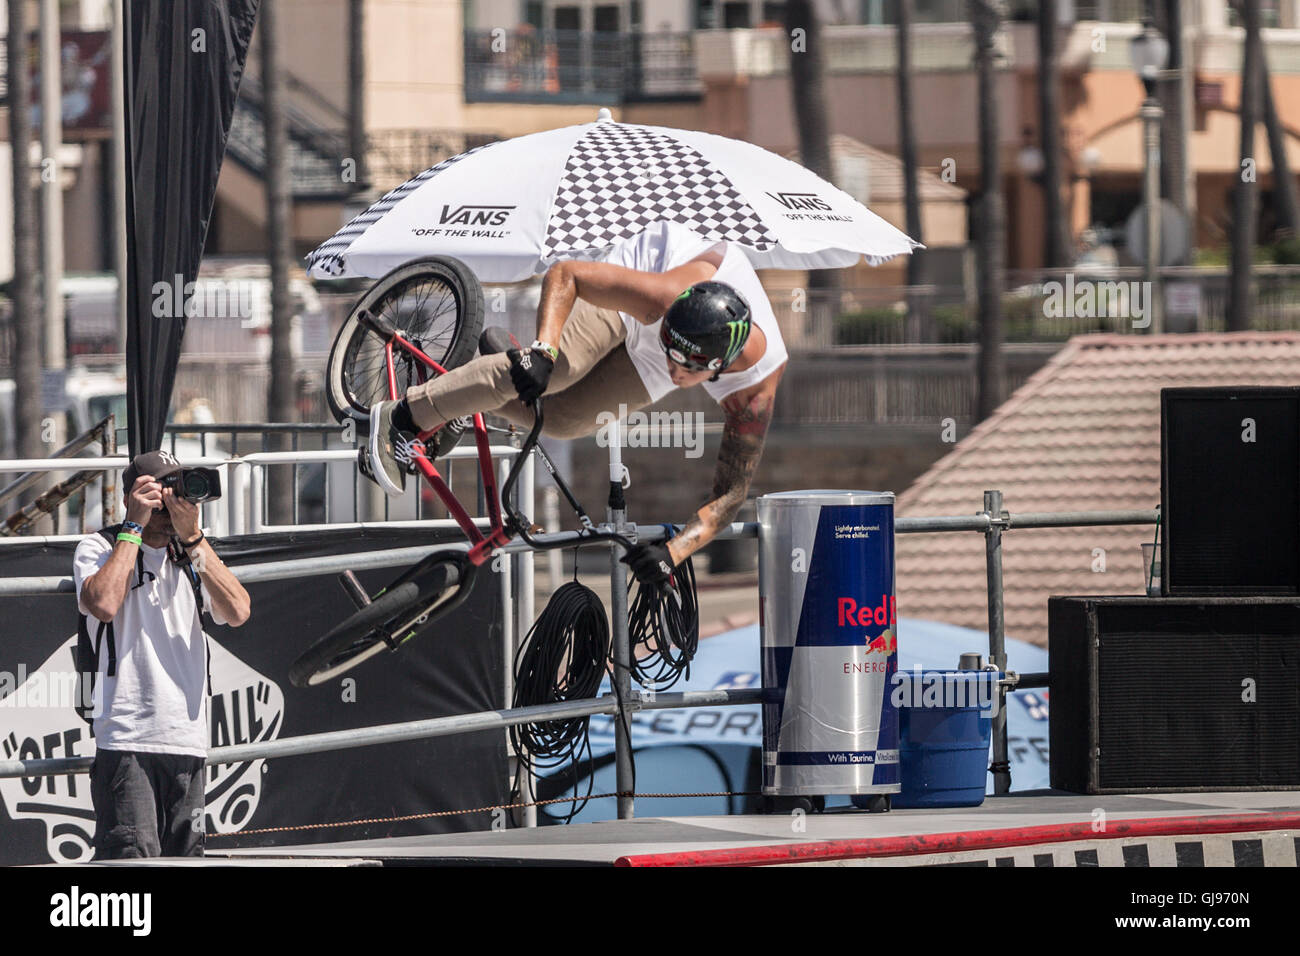 Bicycle stunts at the skatepark at Huntington Beach, California, During the VANS US open competition.July 27 2016 Stock Photo